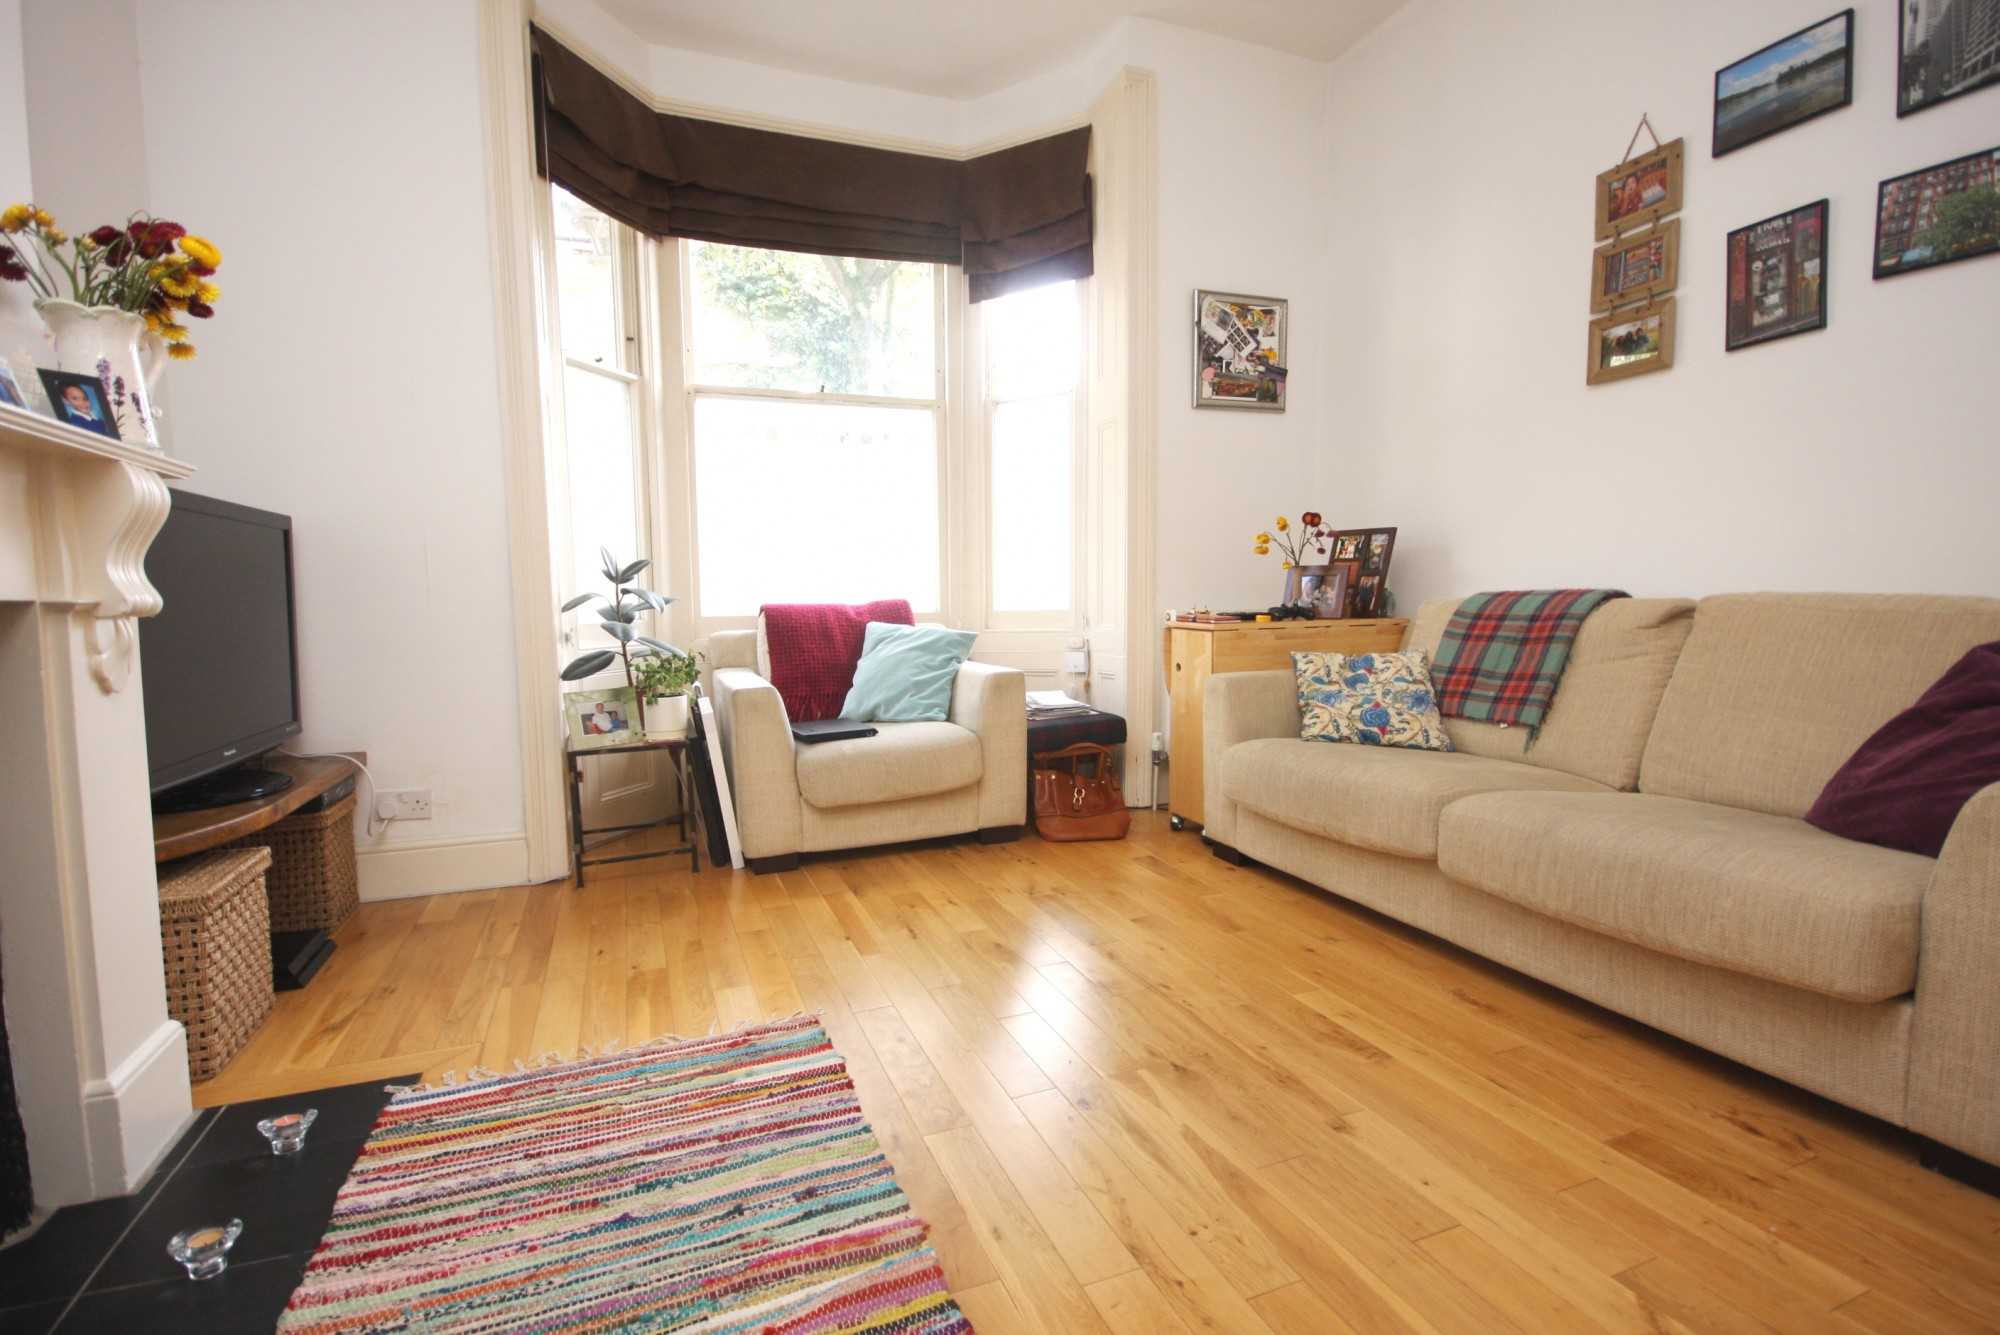 Images for Bardolph Road, N7 0NJ EAID:931013c273837aec744cf2e7889cb460 BID:2